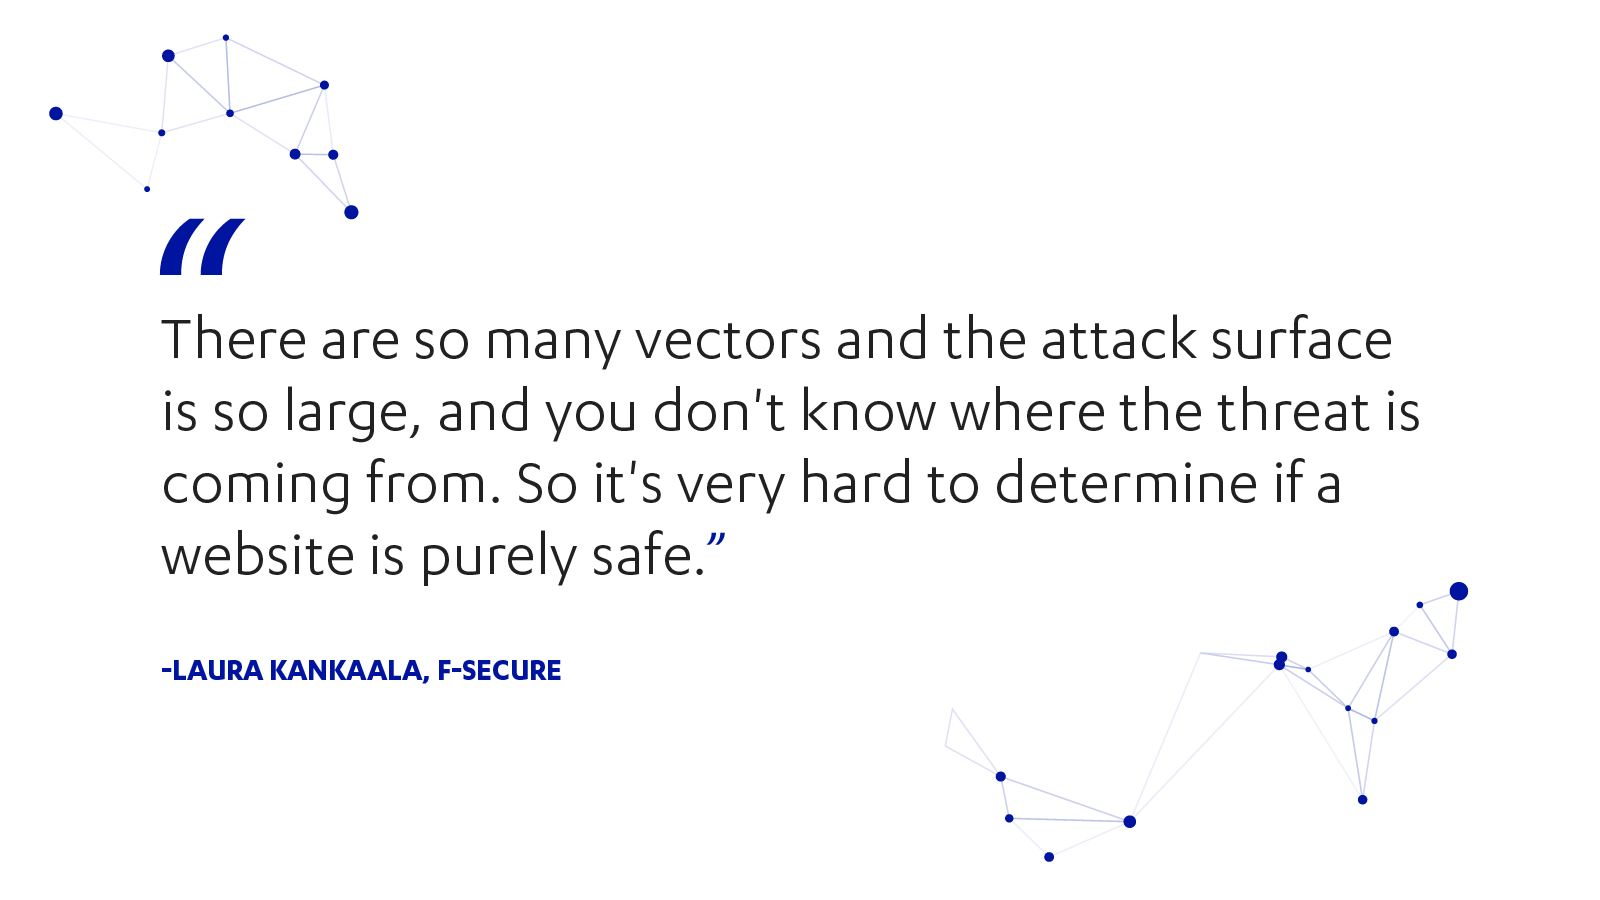 It's hard to determine if a website is purely safe, says Laura Kankaala